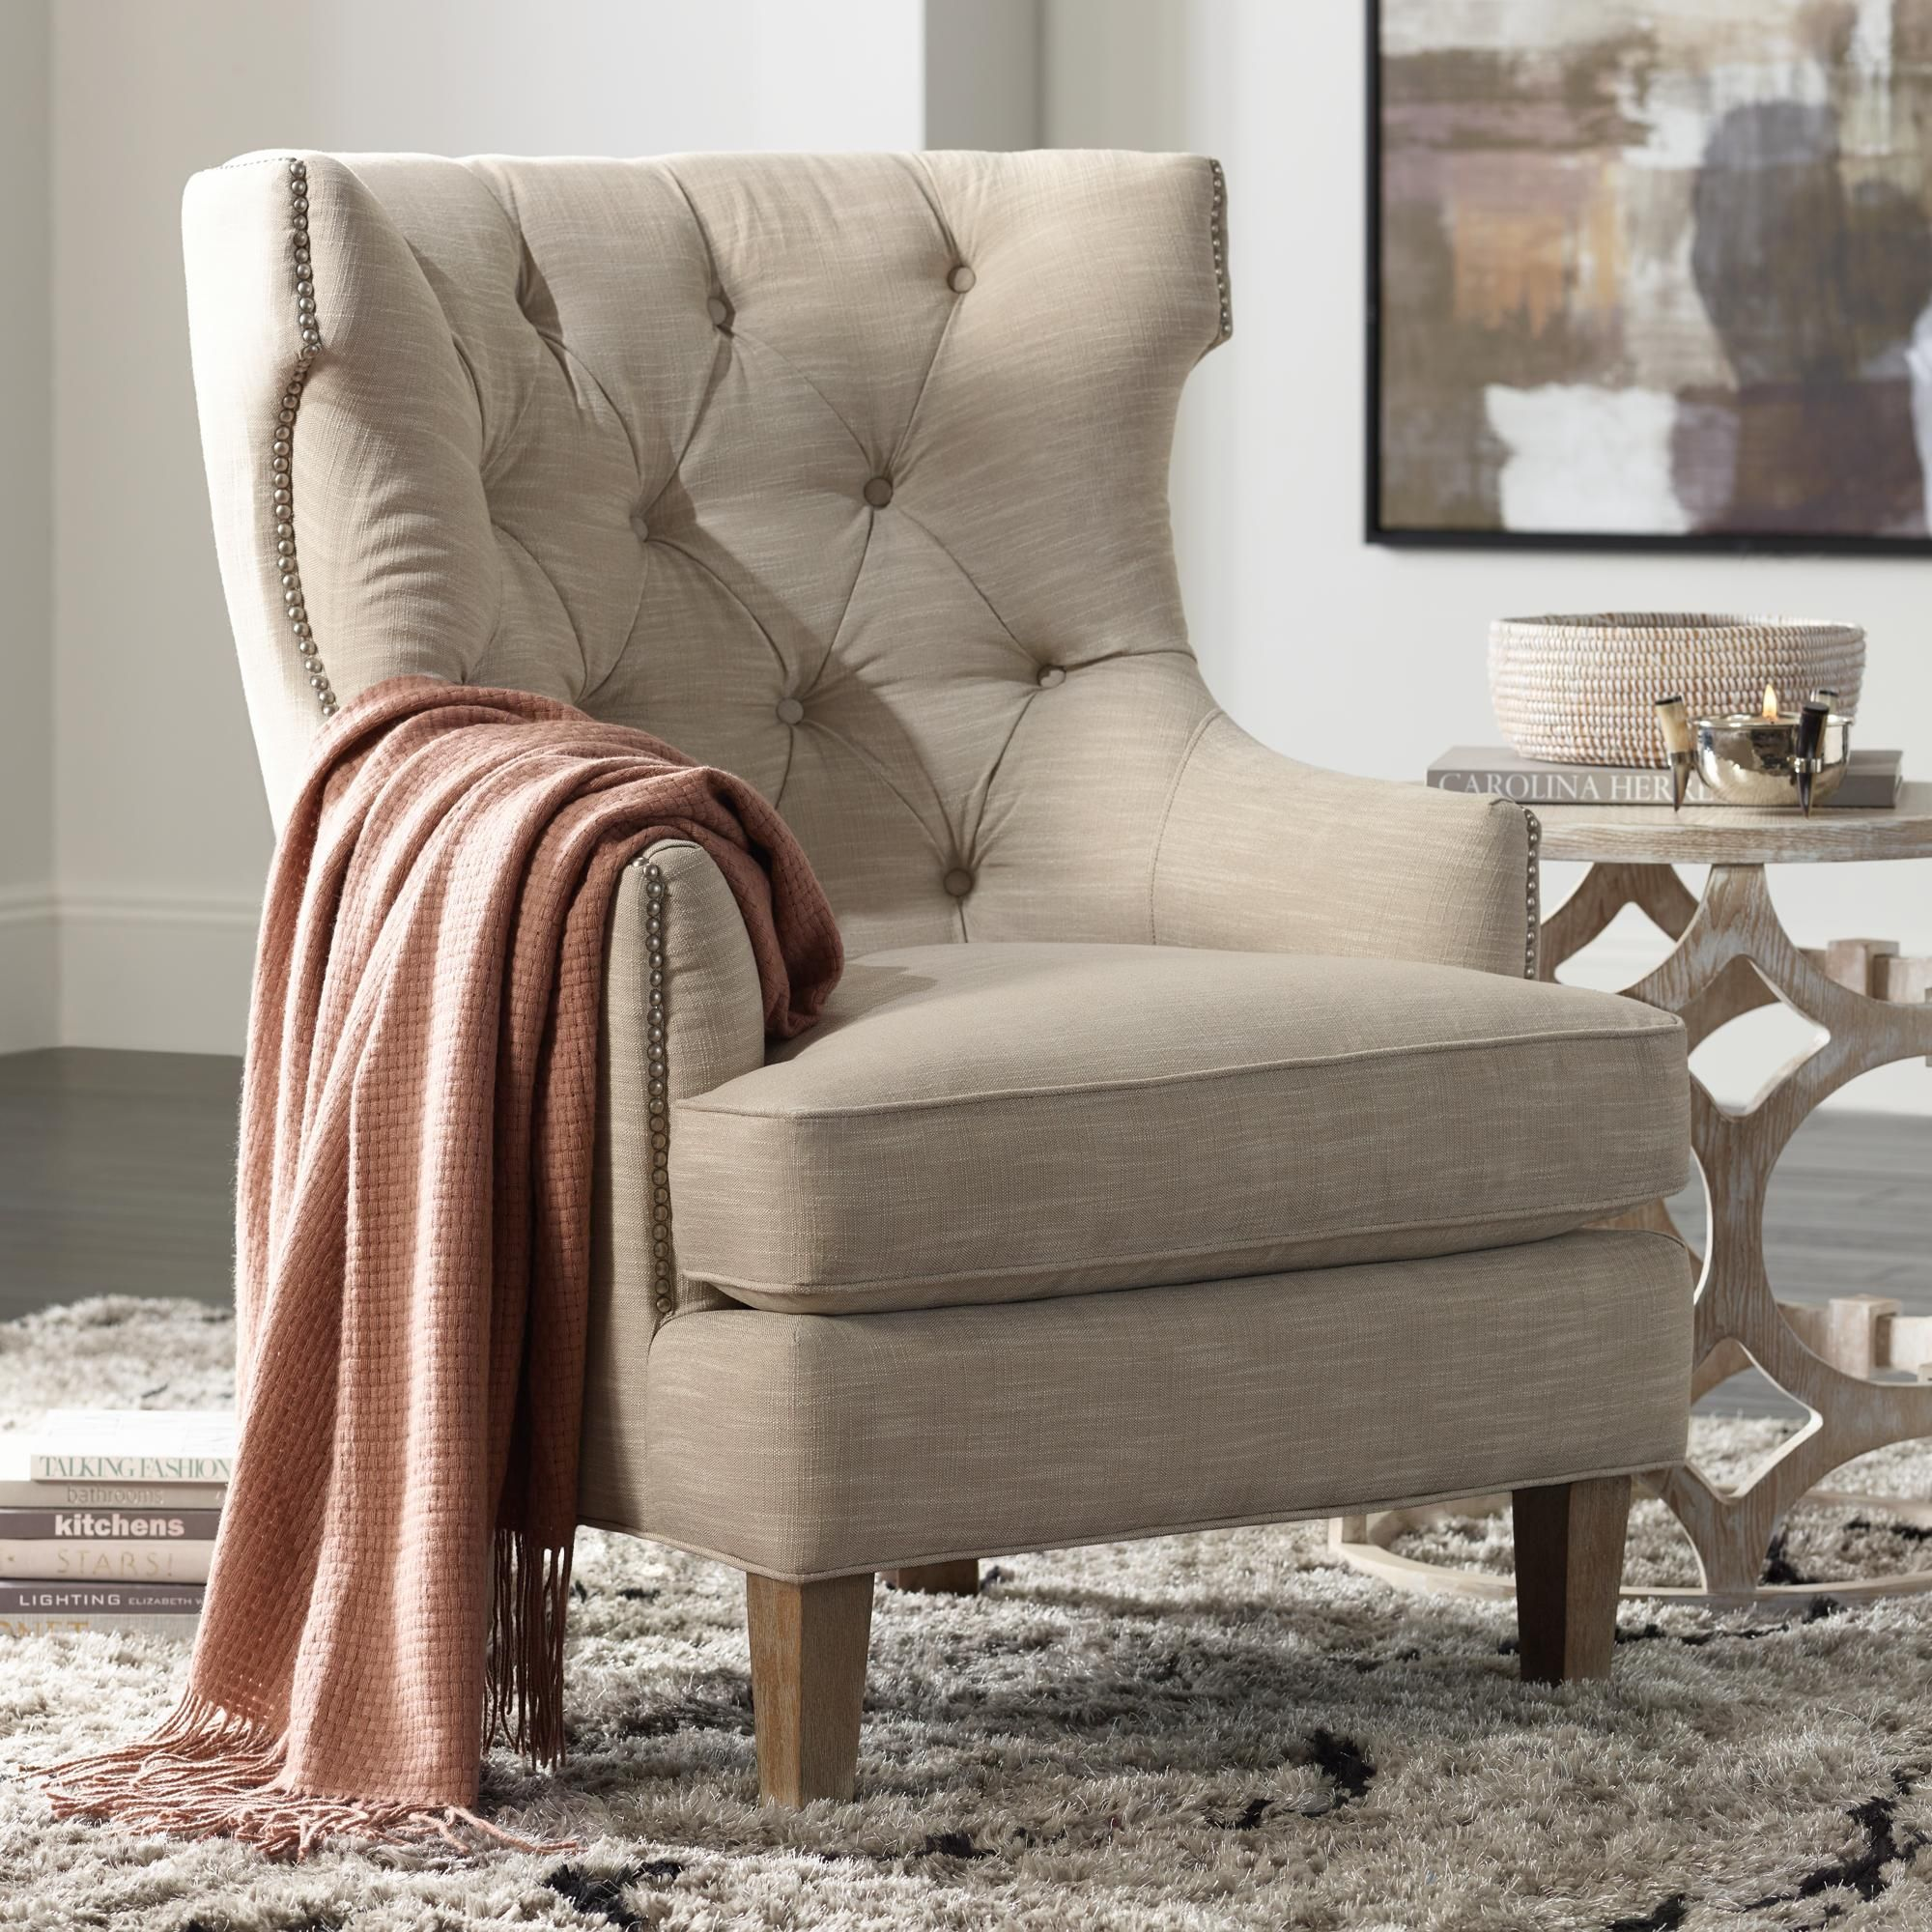 Reese Studio Oatmeal High Back Accent Chair 8g308 Lamps Plus